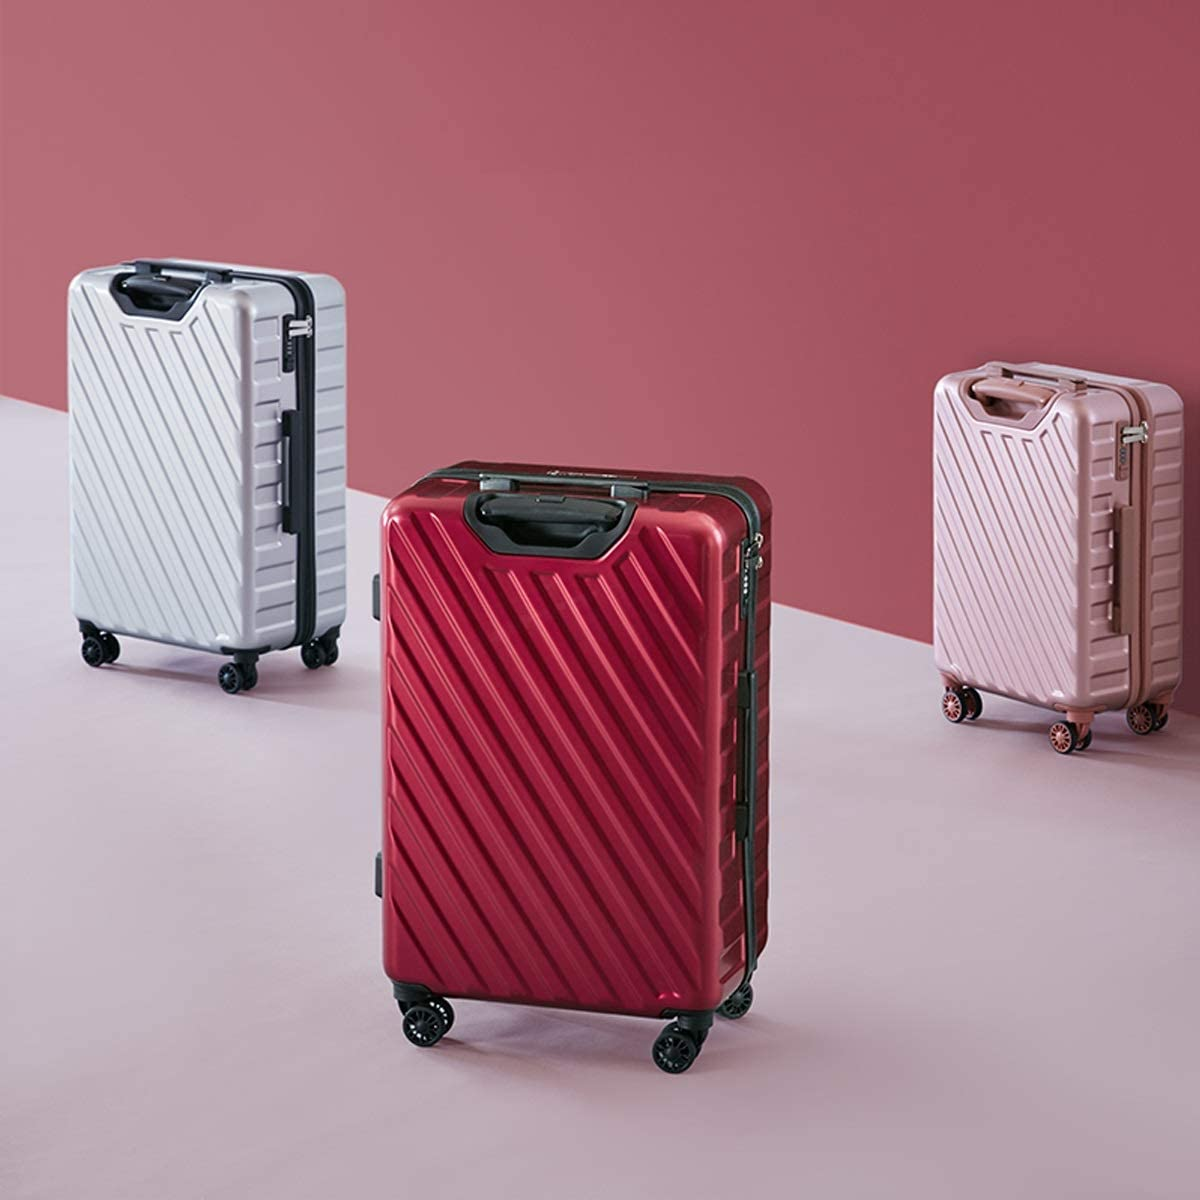 Xinqing Twill Suitcase Male and Female Students Trolley Case Boarding 20 Inch Universal Wheel Luggage Color Black Gray Size 50.53523.5cm Best Choice Product Color : Gray